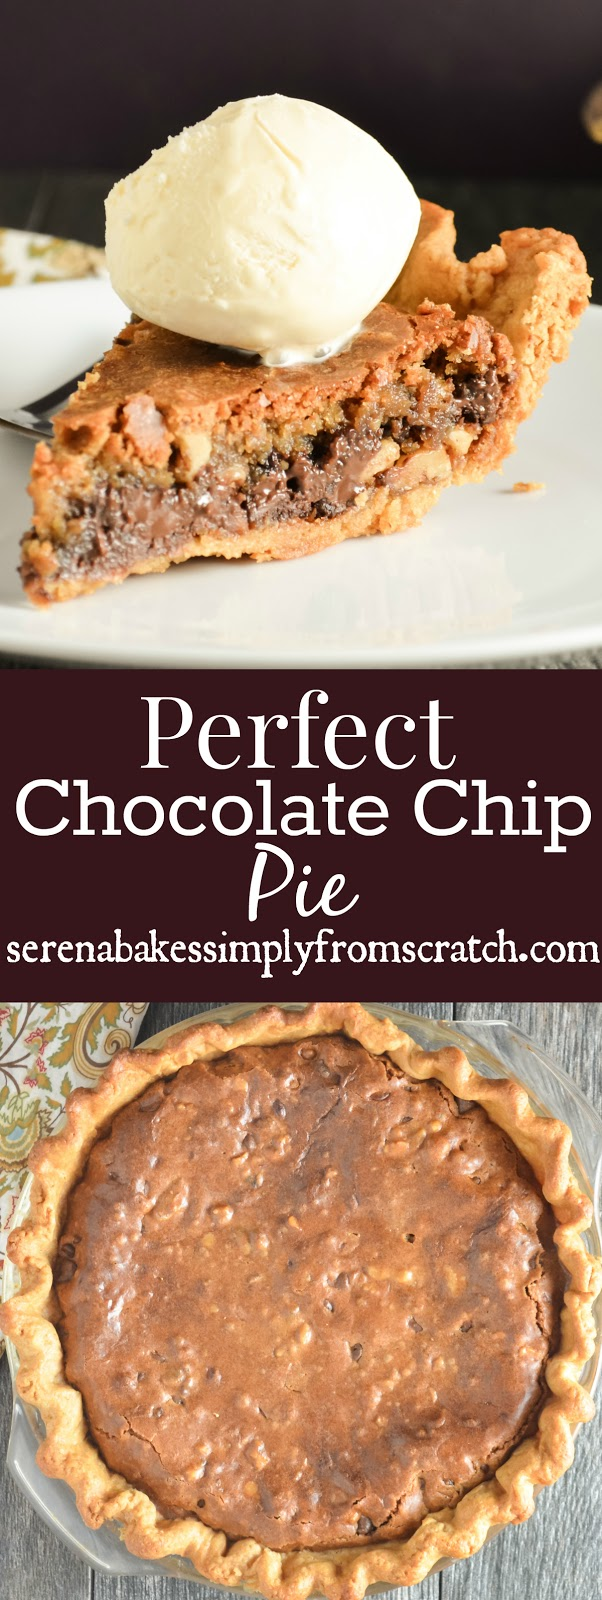 Perfect Chocolate Chip Pie - Serena Bakes Simply From Scratch